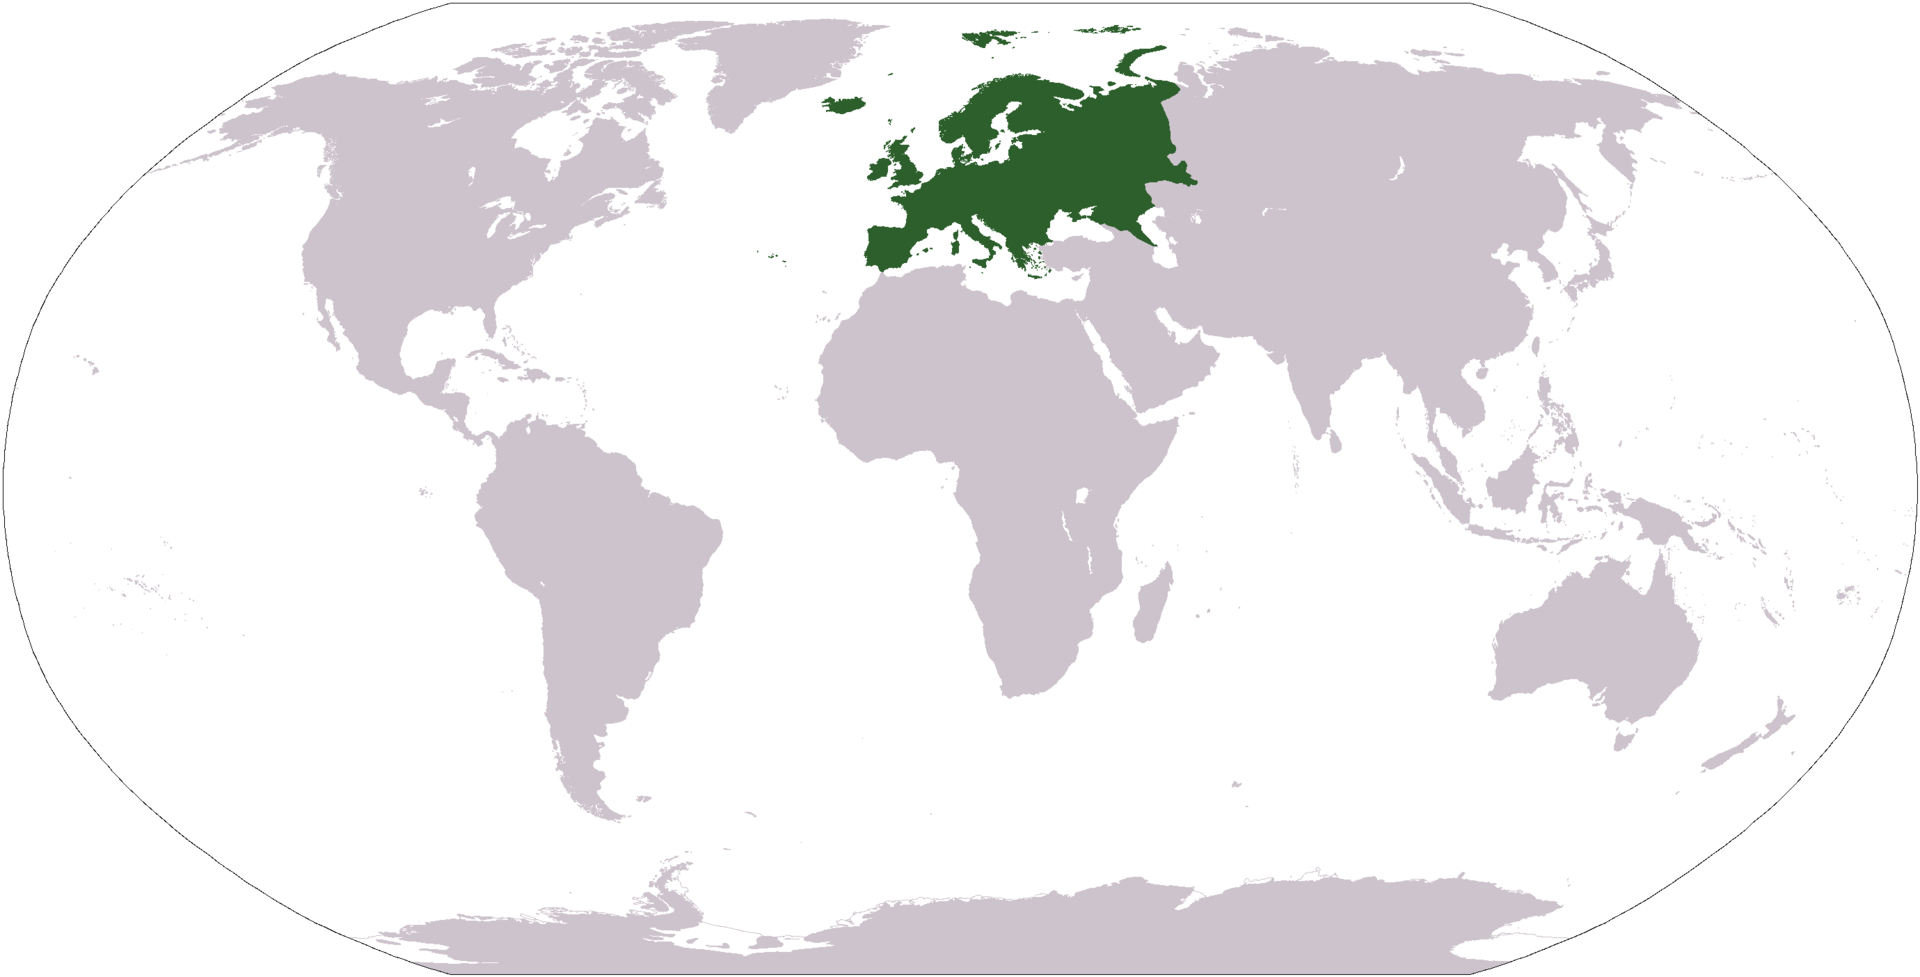 World map with Europe highlighted in green